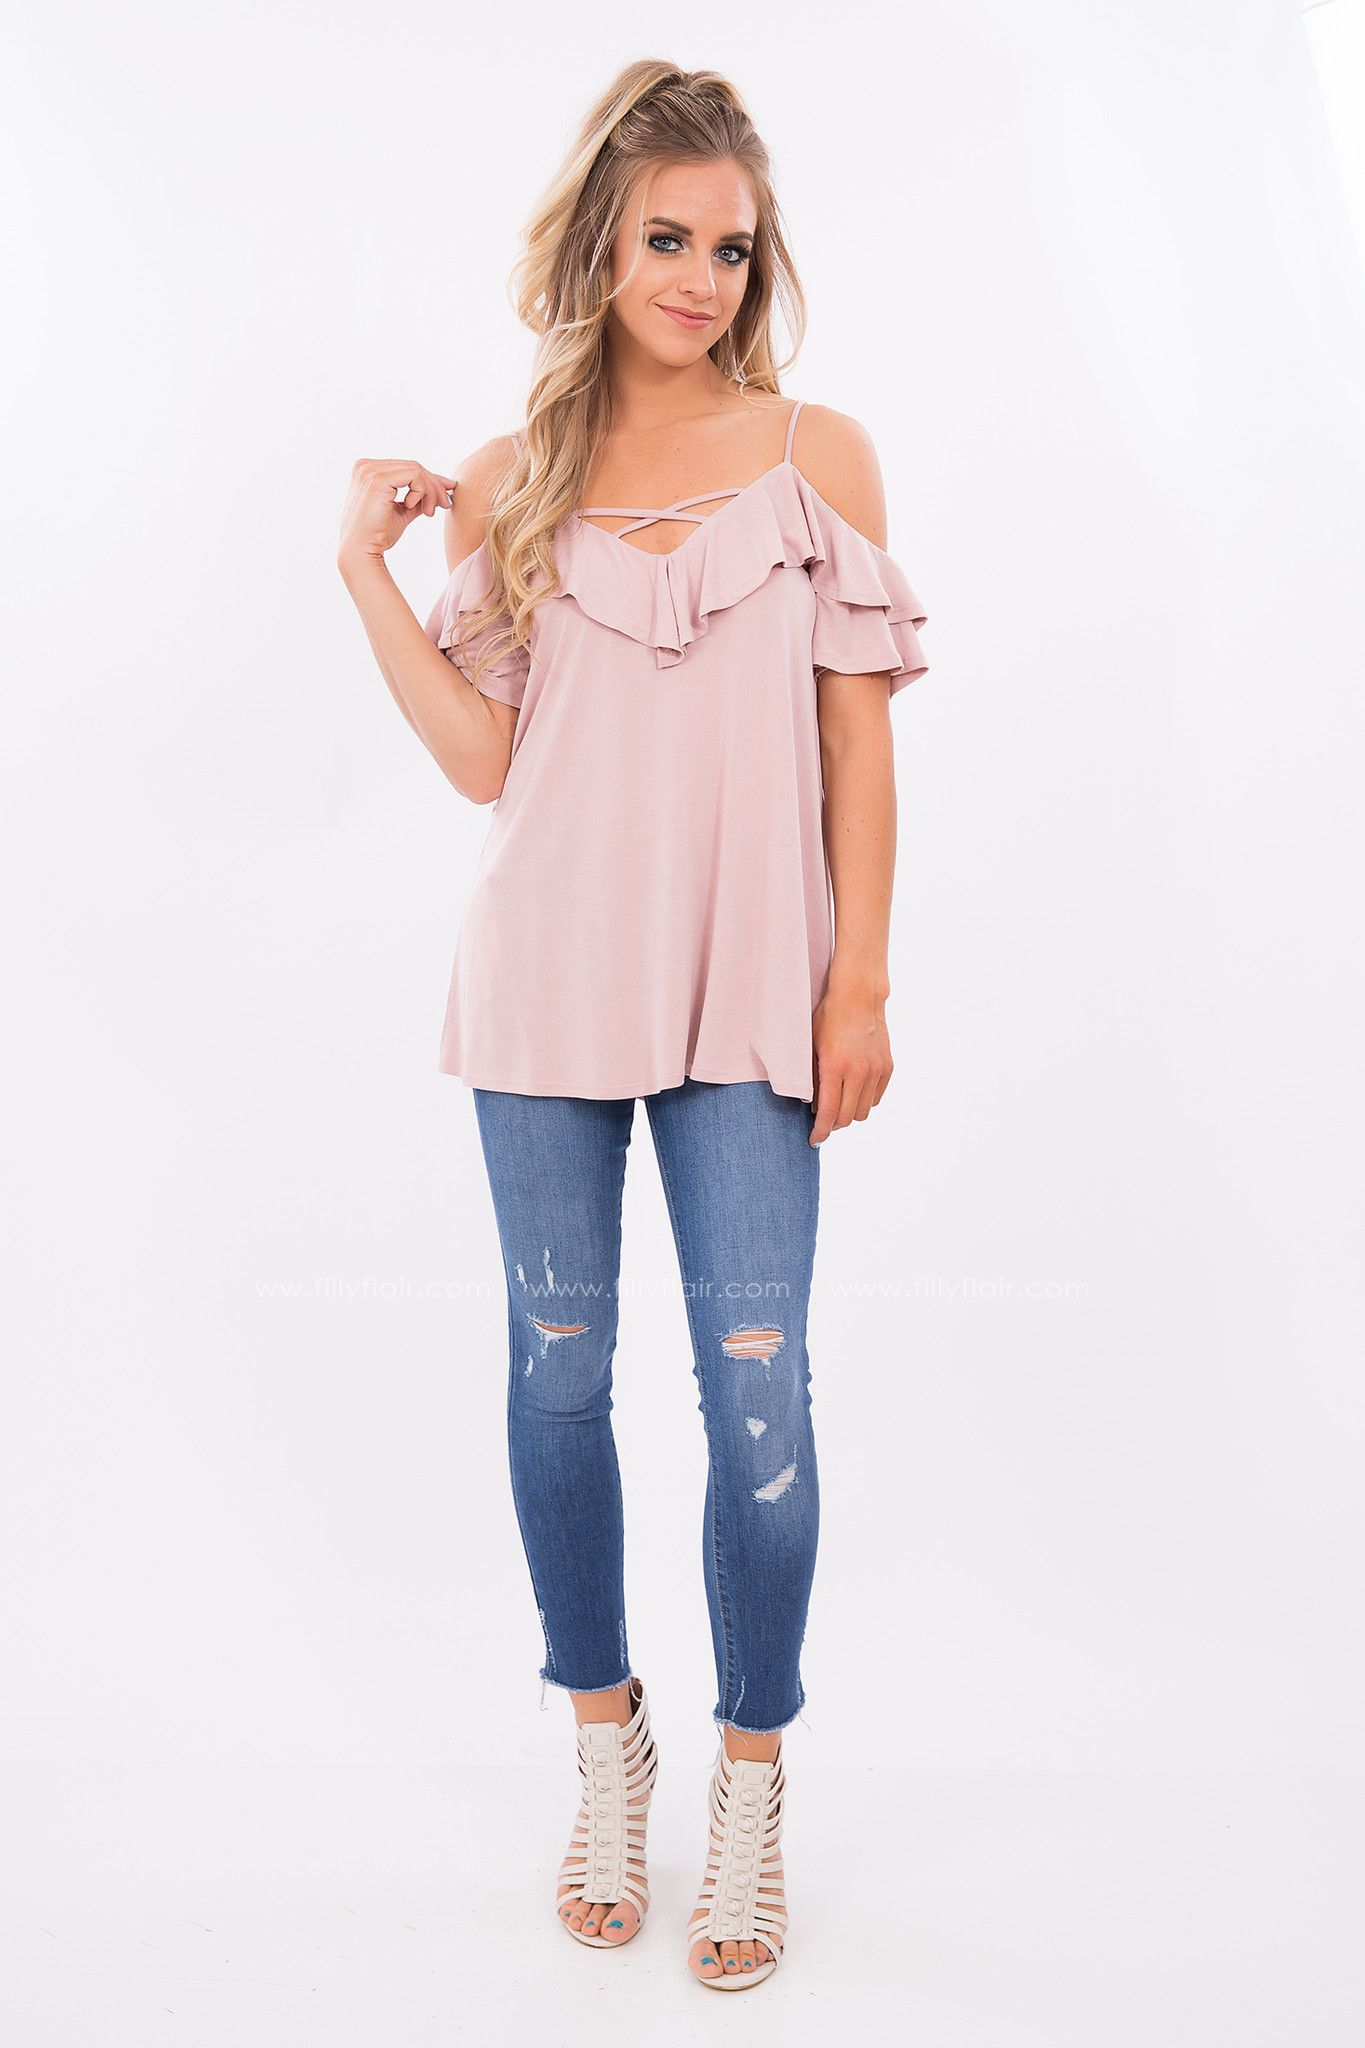 7f84e0a1ee1e42 When you need that casual top that you can still dress up for a date night  look no further than this pink off the shoulder top. This strappy neck and  cold ...